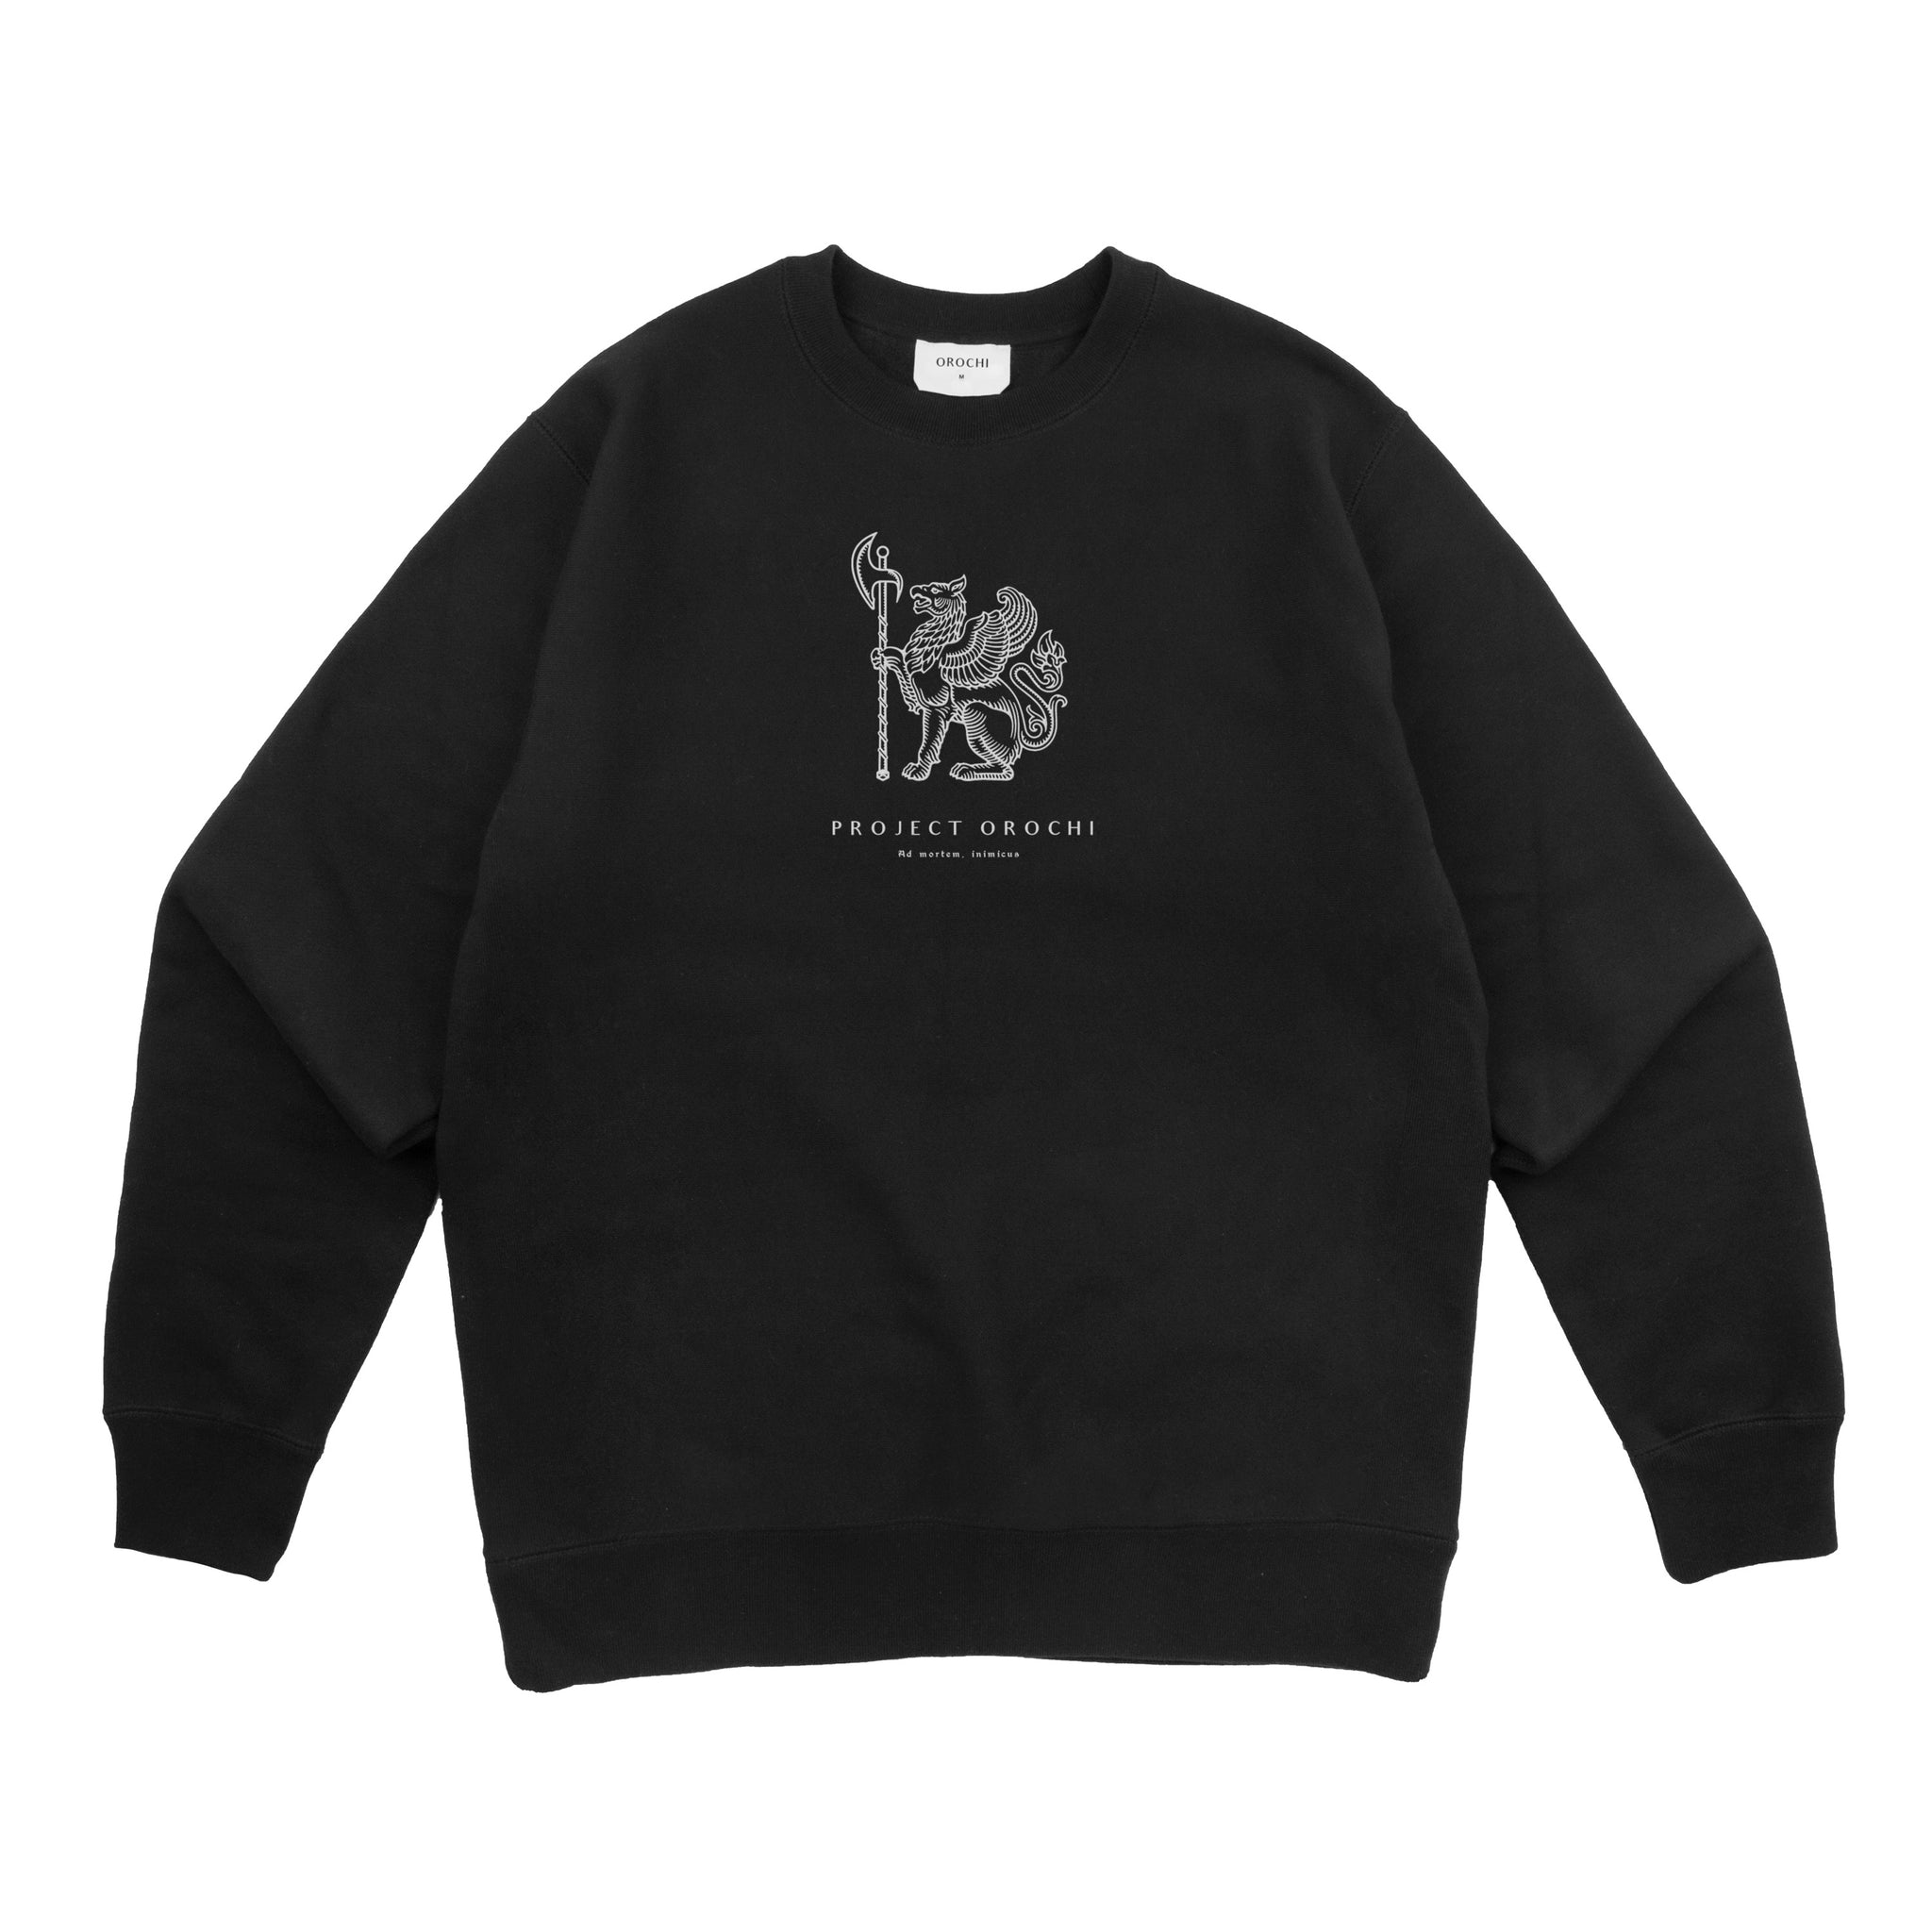 Law Crewneck - Black